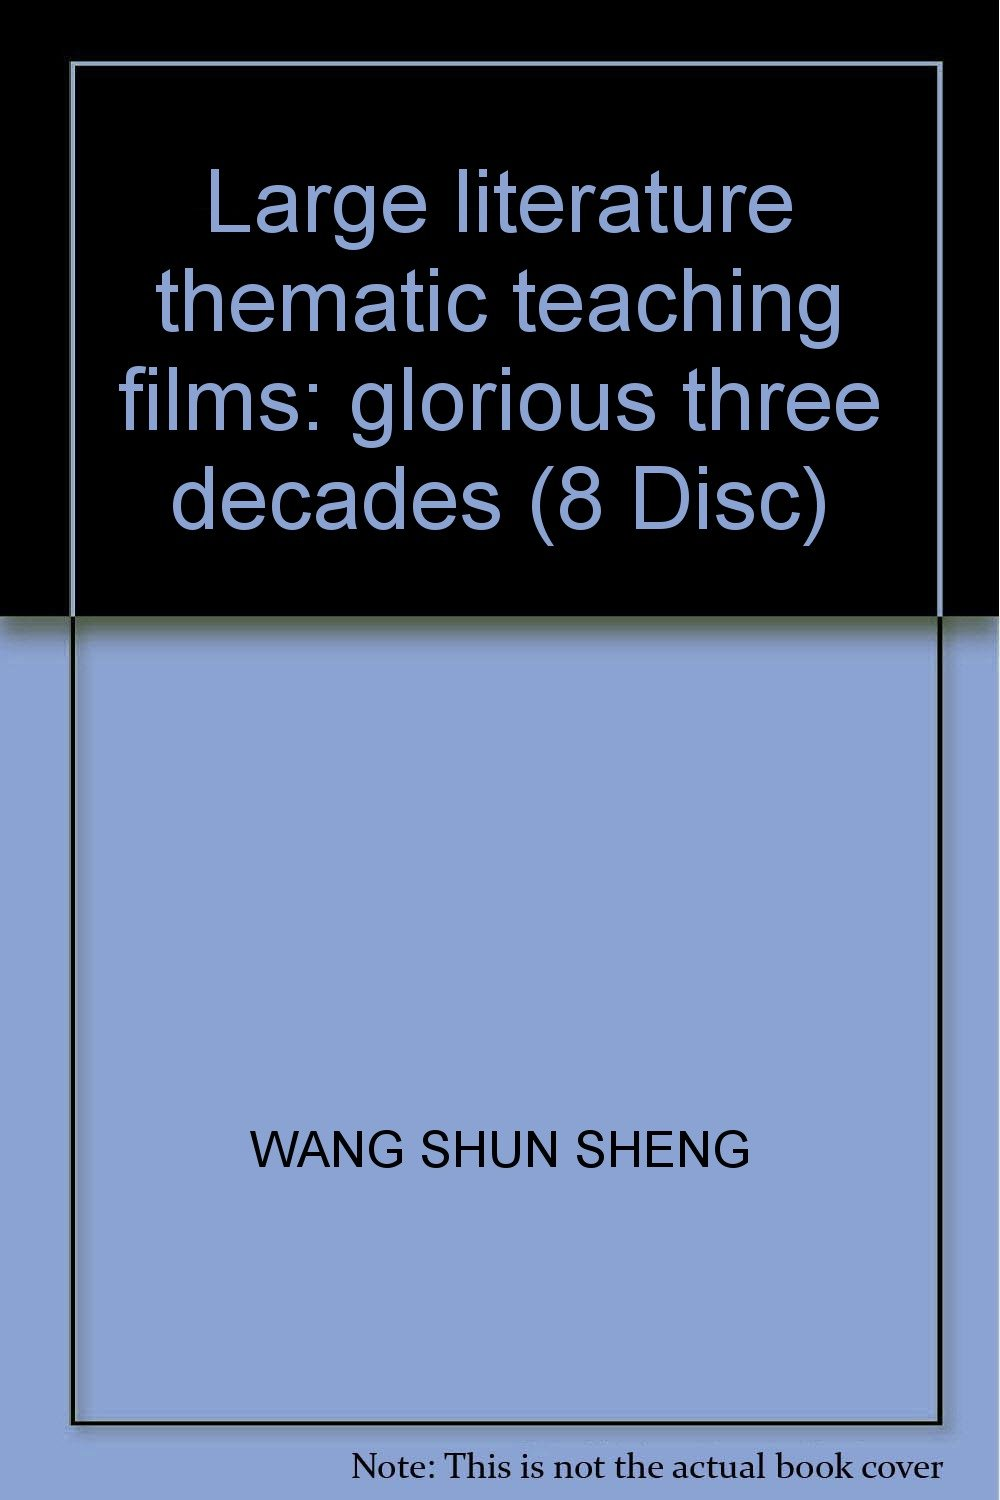 Large literature thematic teaching films: glorious three decades (8 Disc) PDF